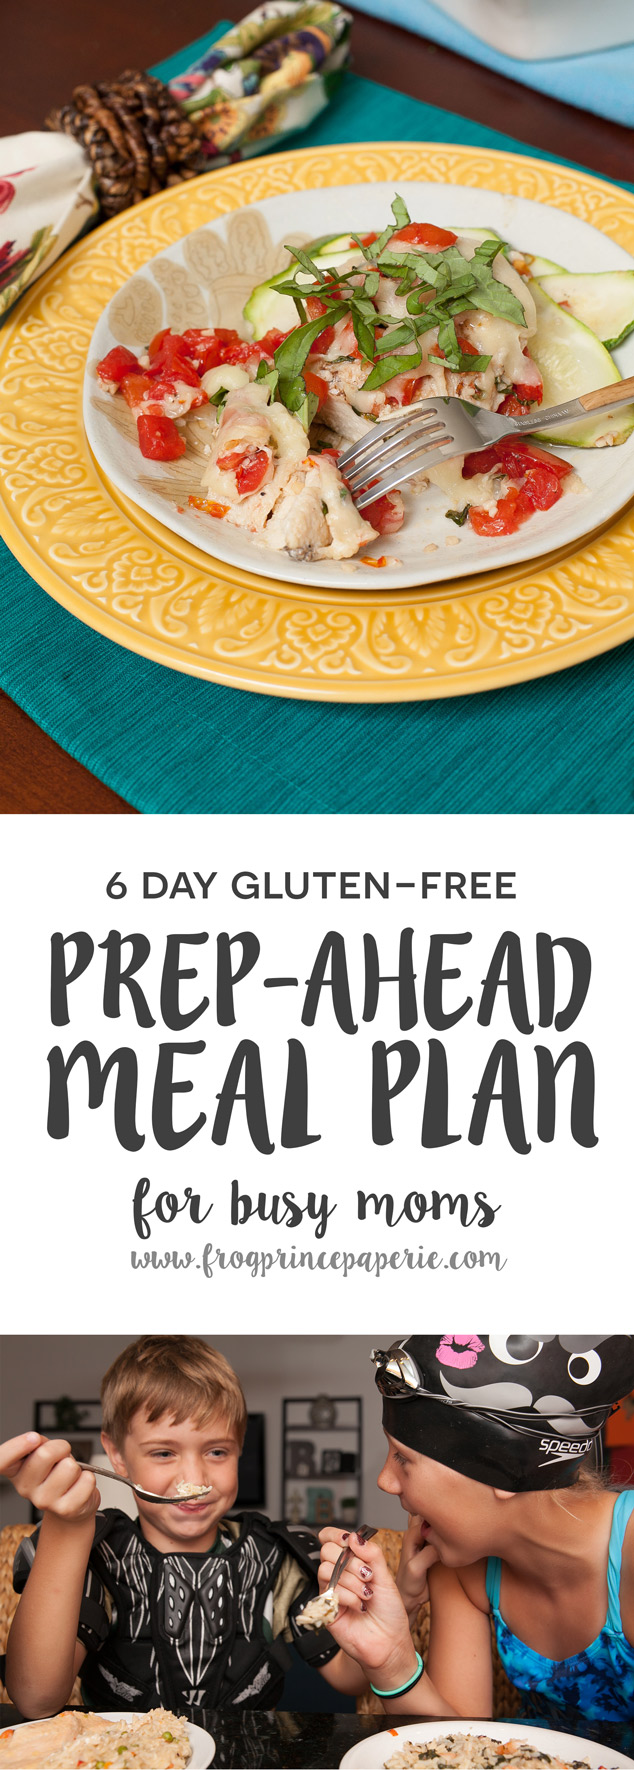 6-day-prep-ahead-meal-plan-for-busy-moms